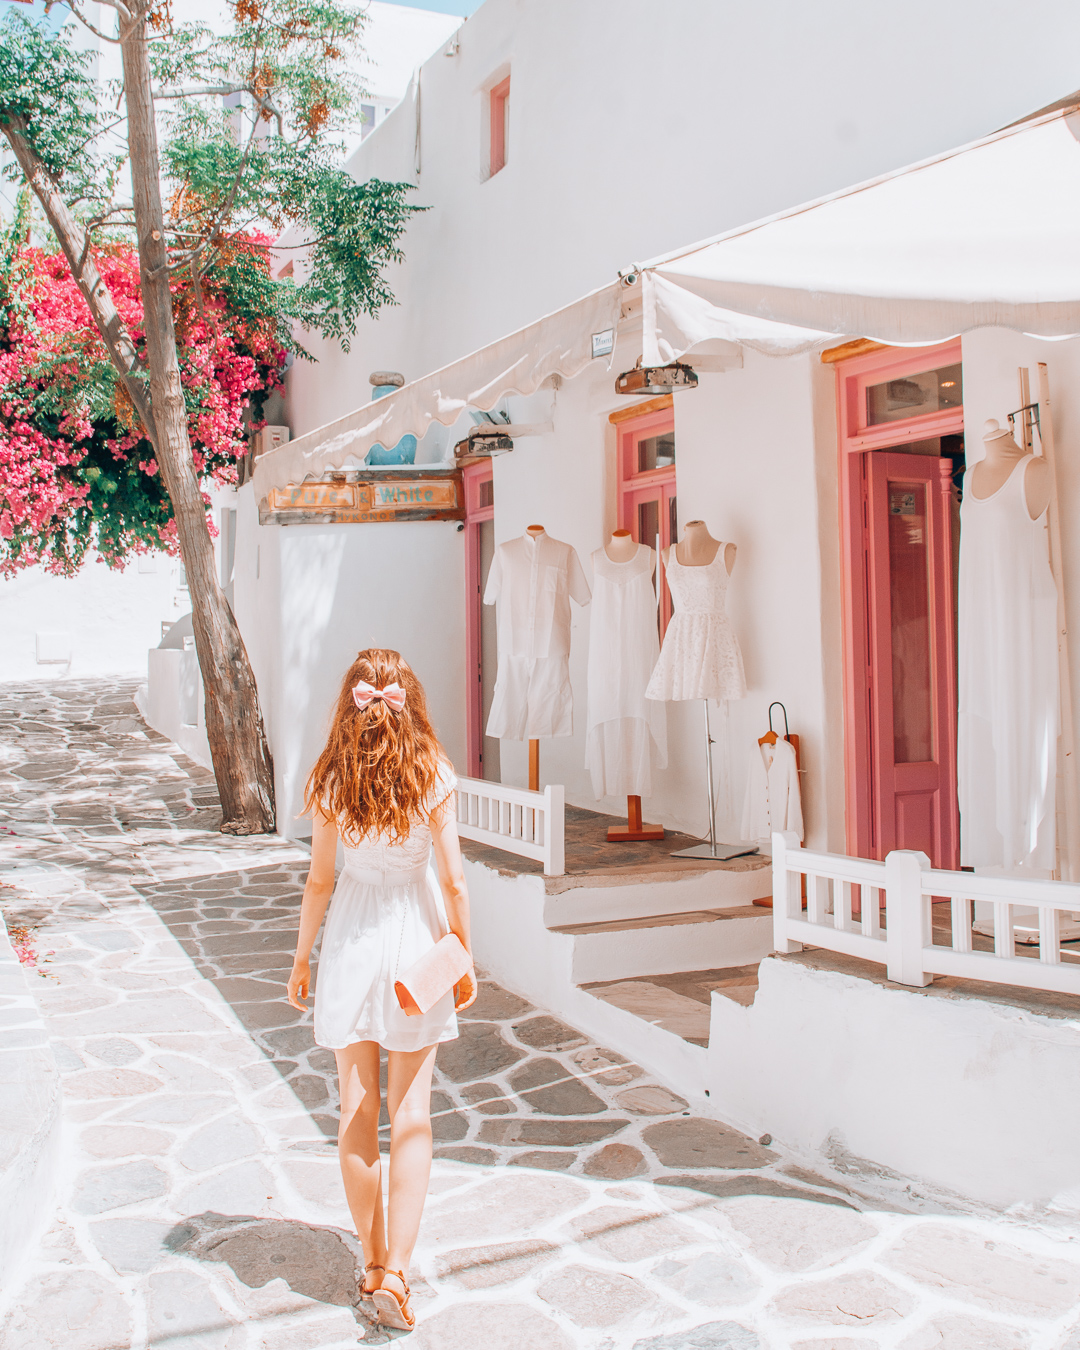 Shop with dresses in Mykonos